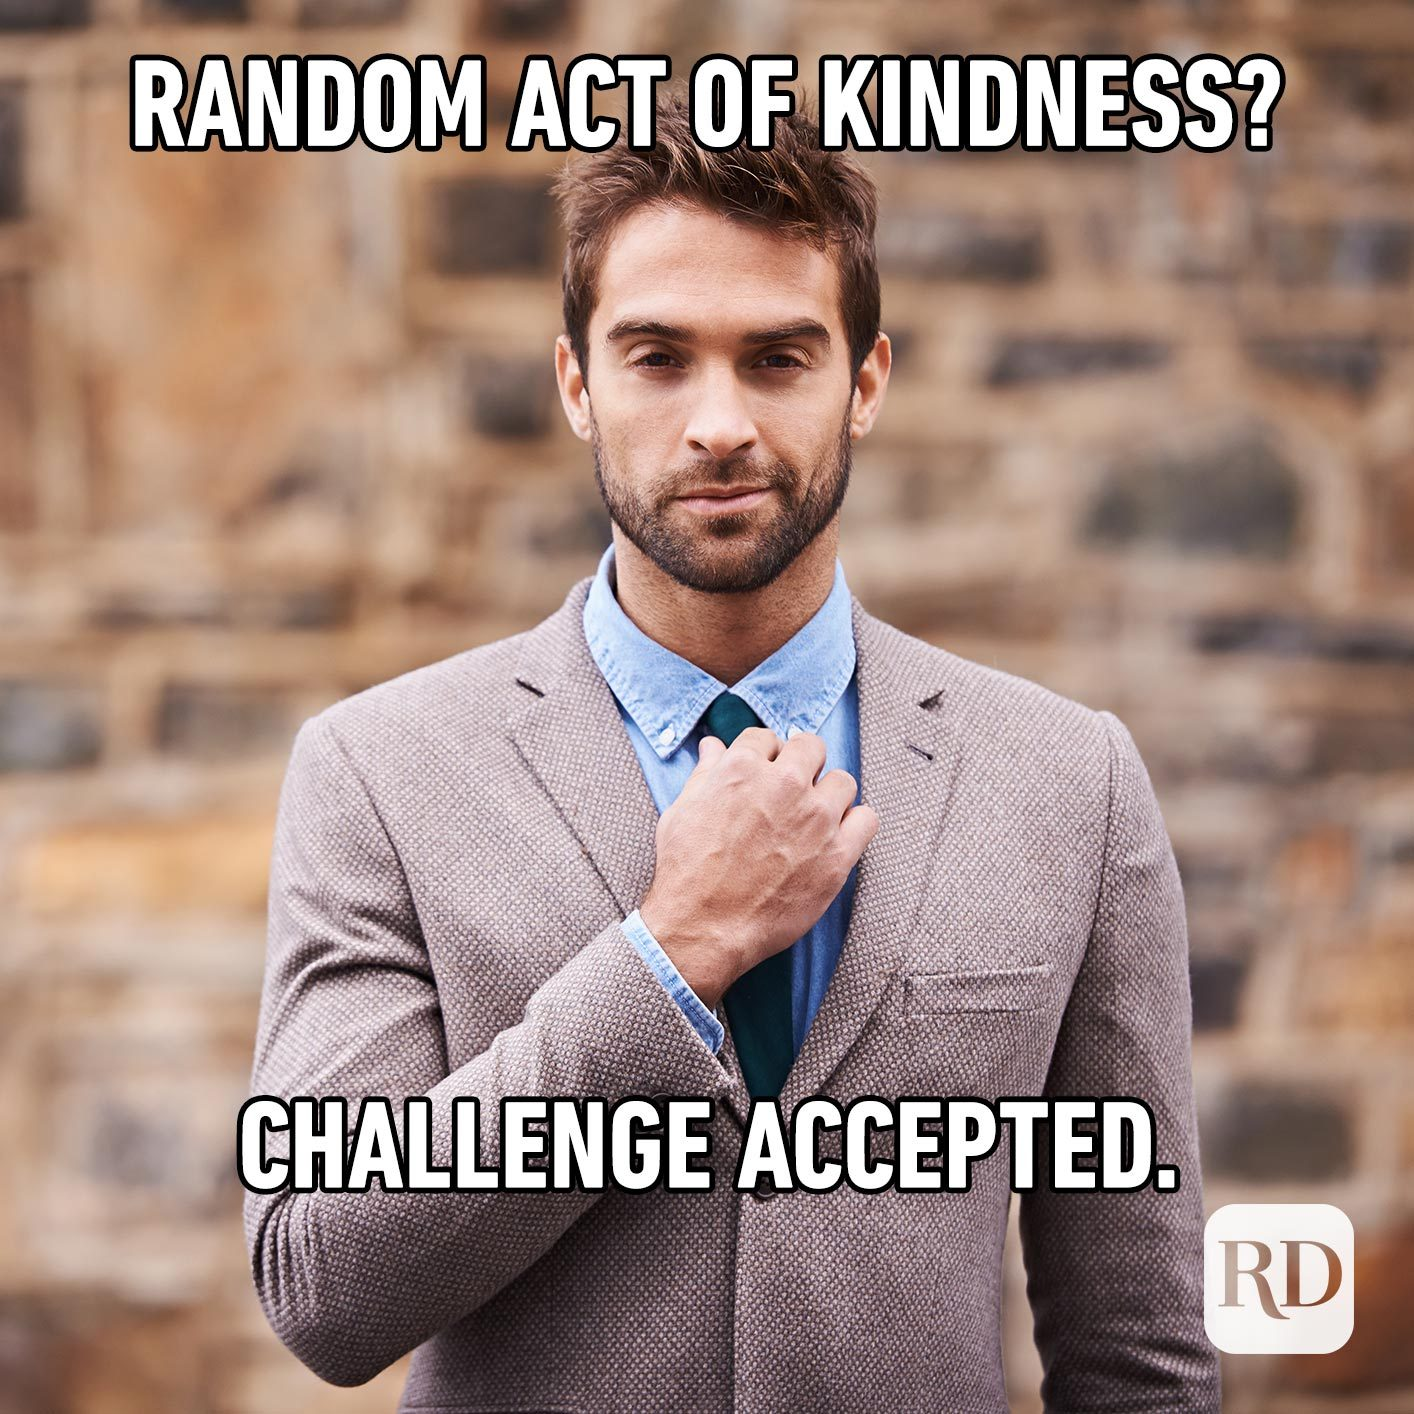 Man adjusting tie. Meme text: Random act of kindness? Challenge accepted.